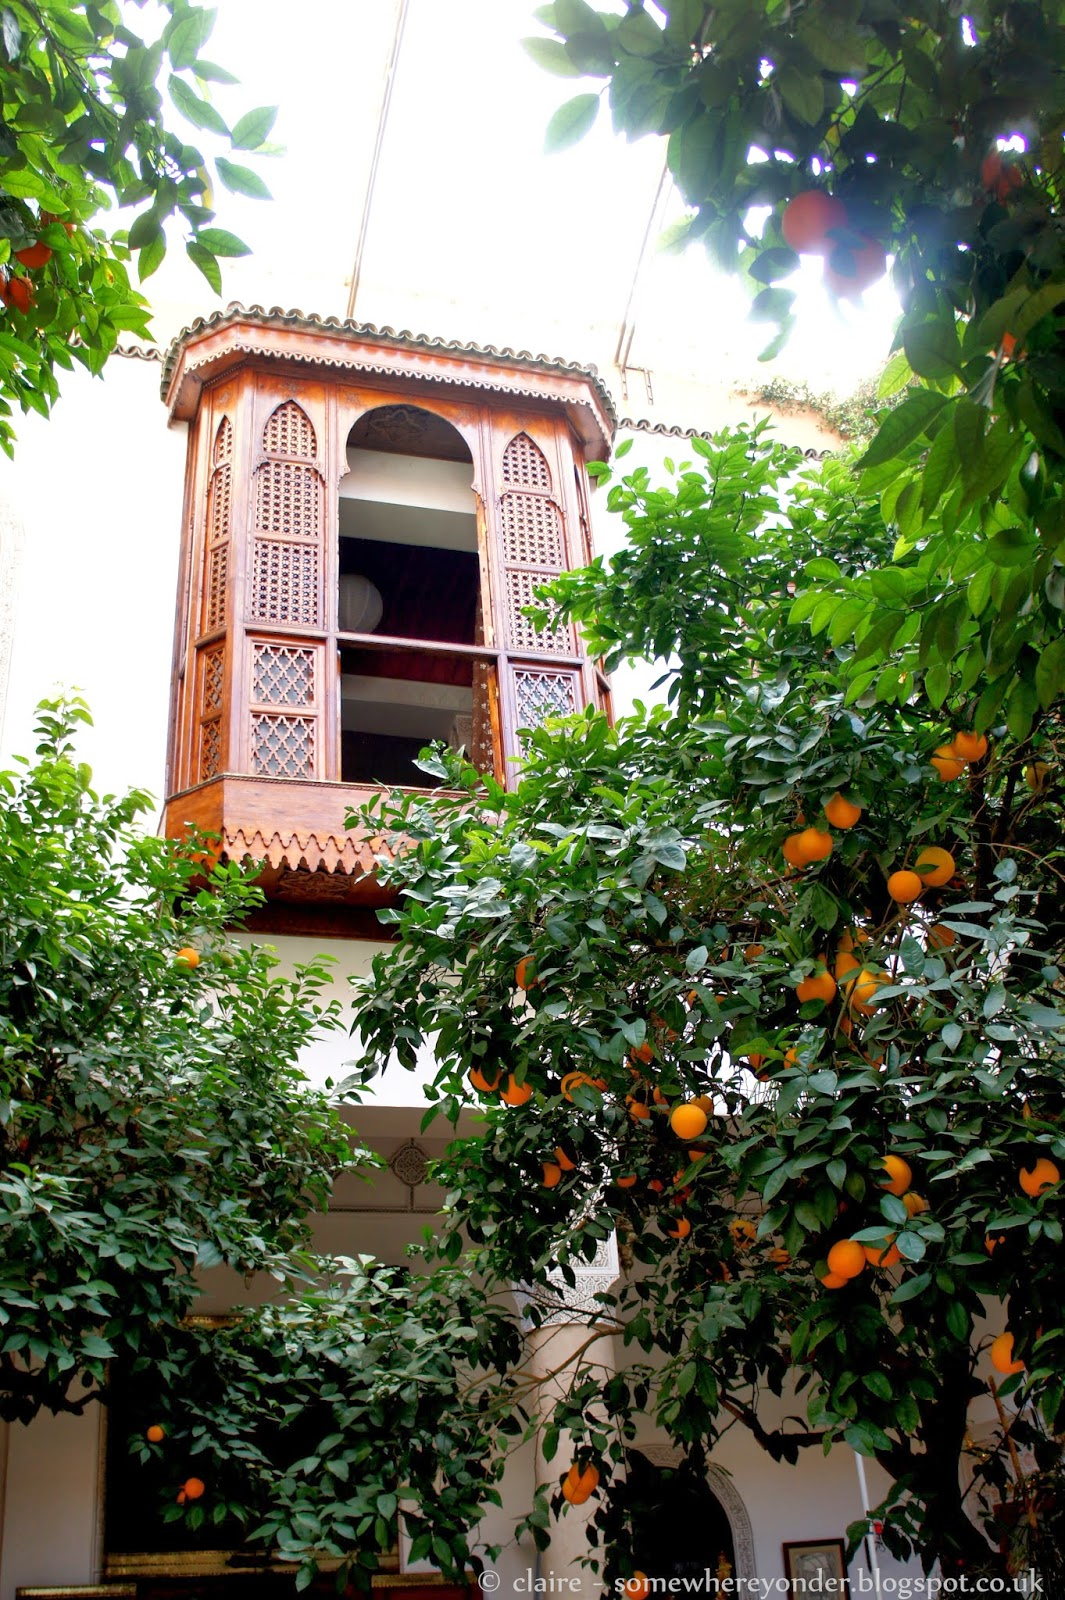 Inner courtyard at Riad Rafaele - complete with orange trees